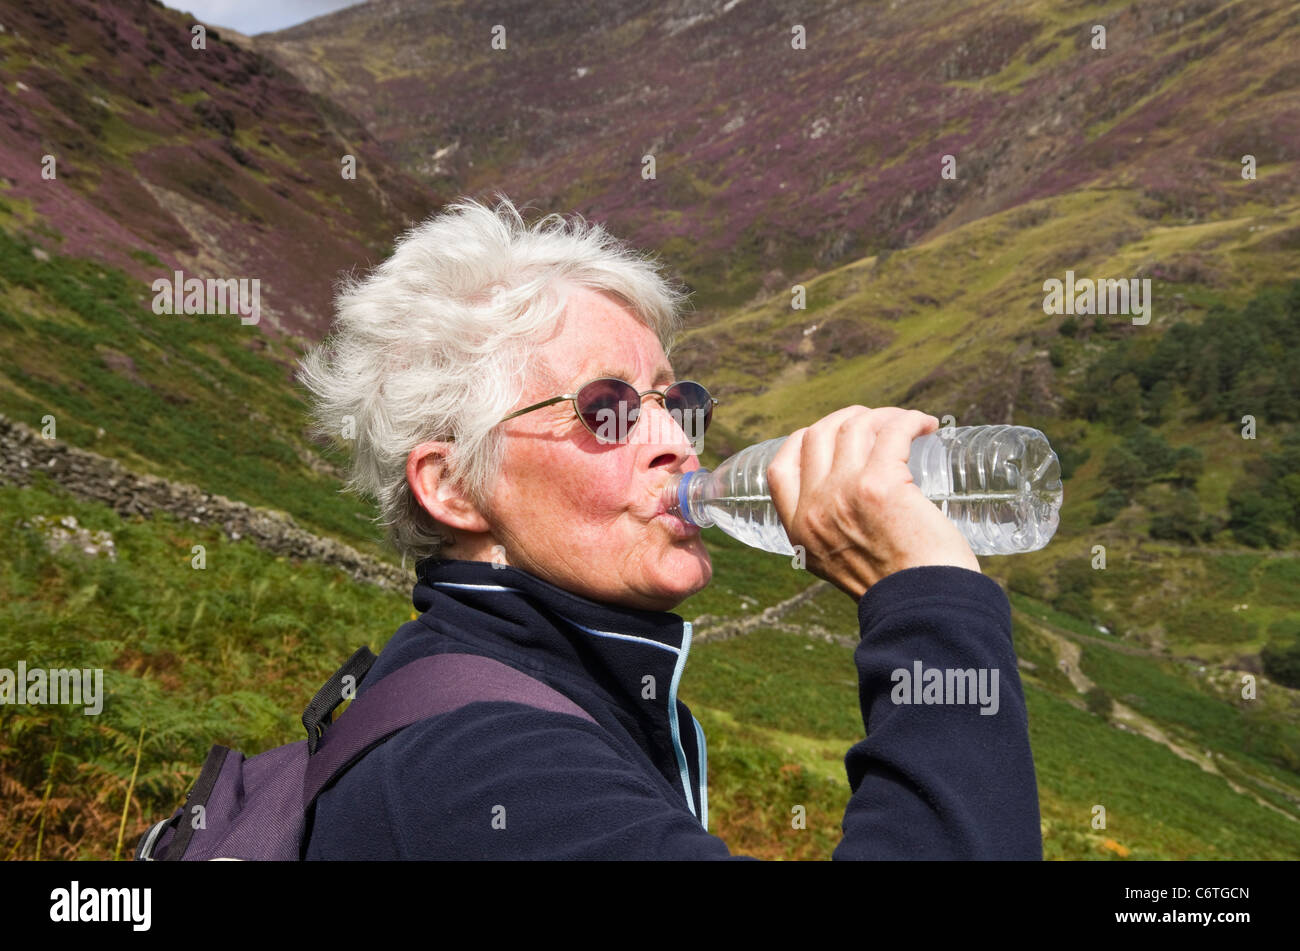 Thirsty active senior woman walker drinking bottled water from a plastic bottle whilst out hiking outdoors in mountains - Stock Image